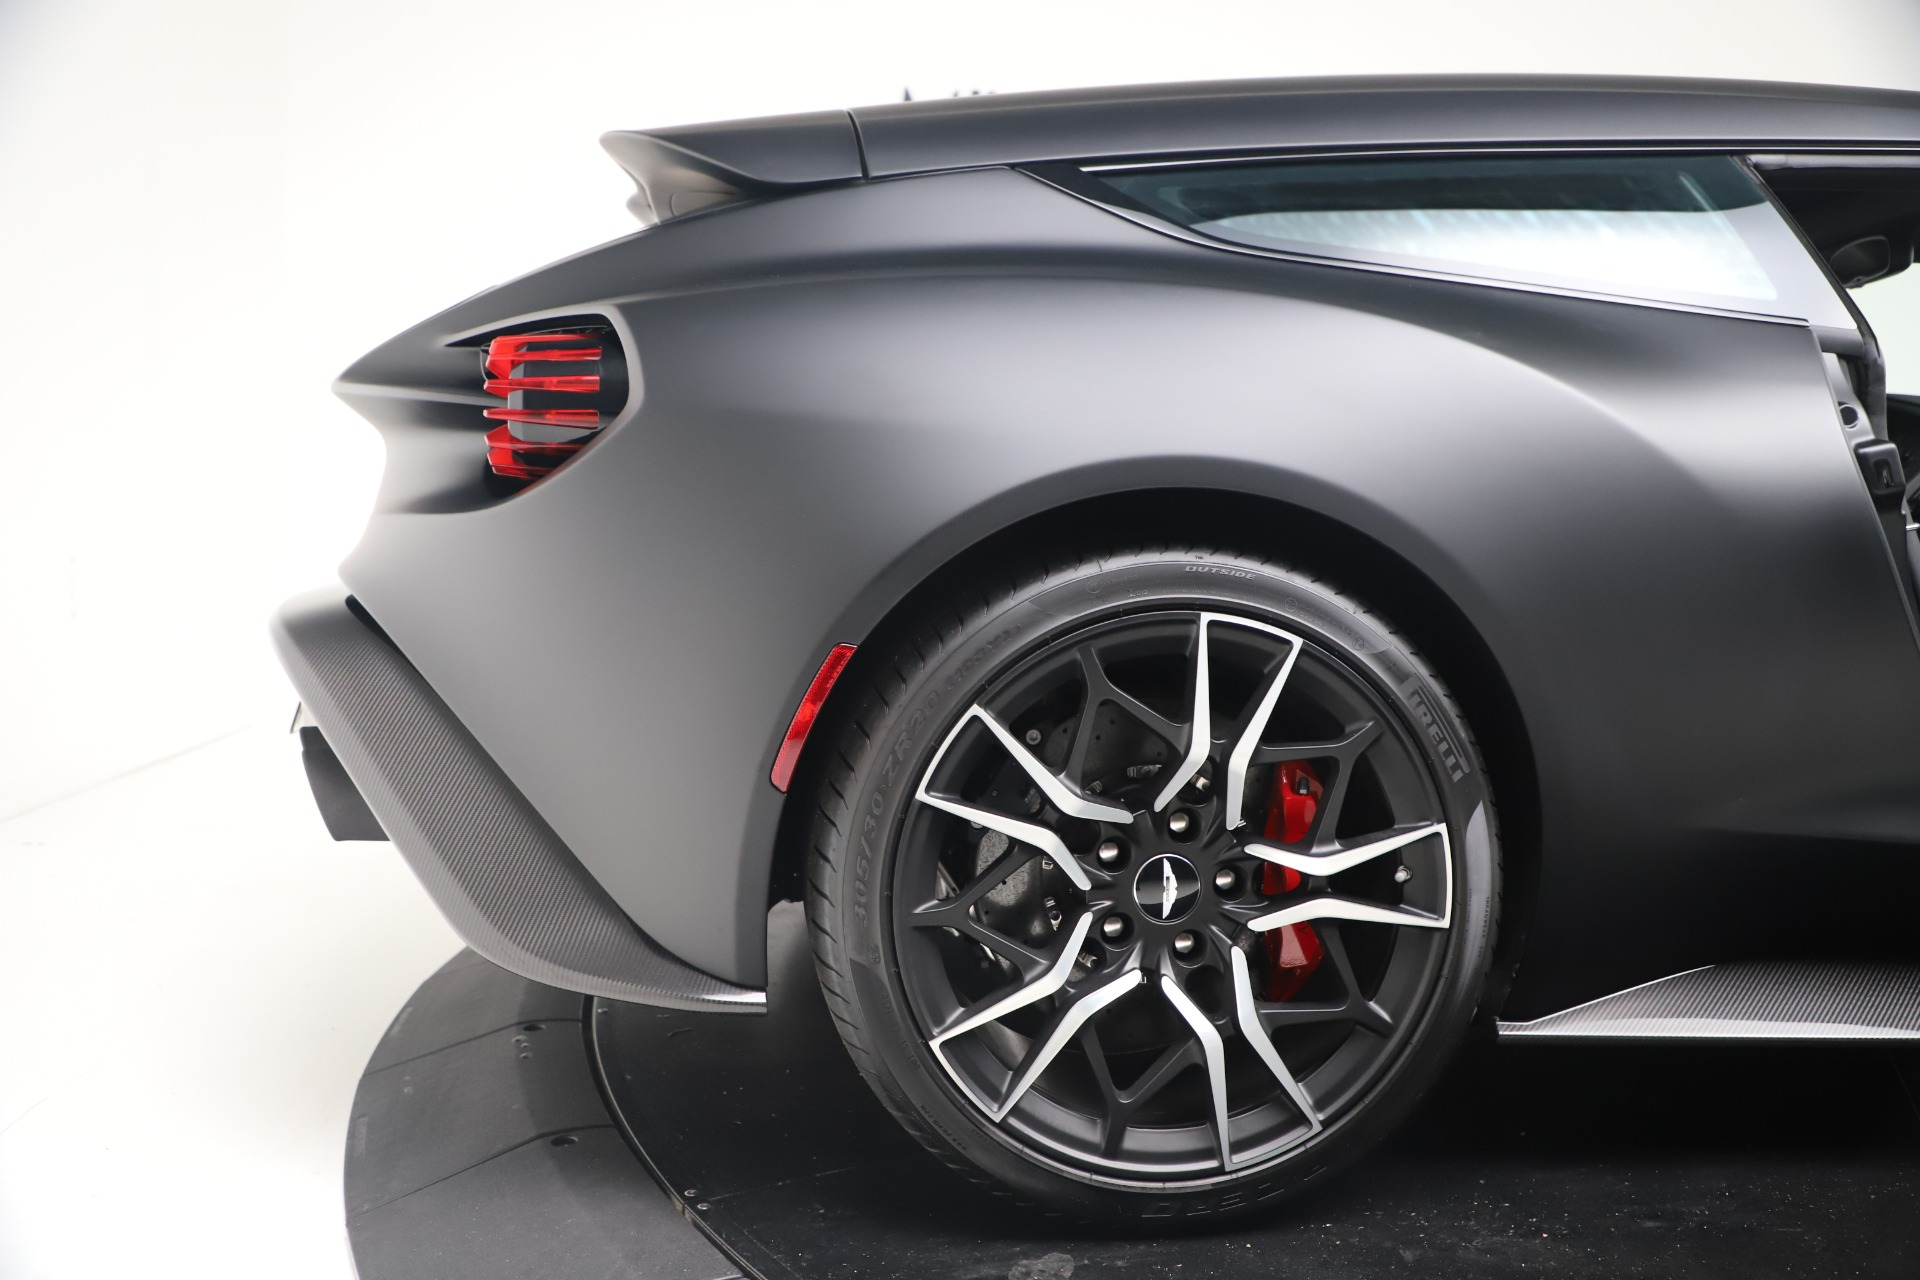 New 2019 Aston Martin Vanquish Shooting Brake For Sale 909871 In Greenwich, CT